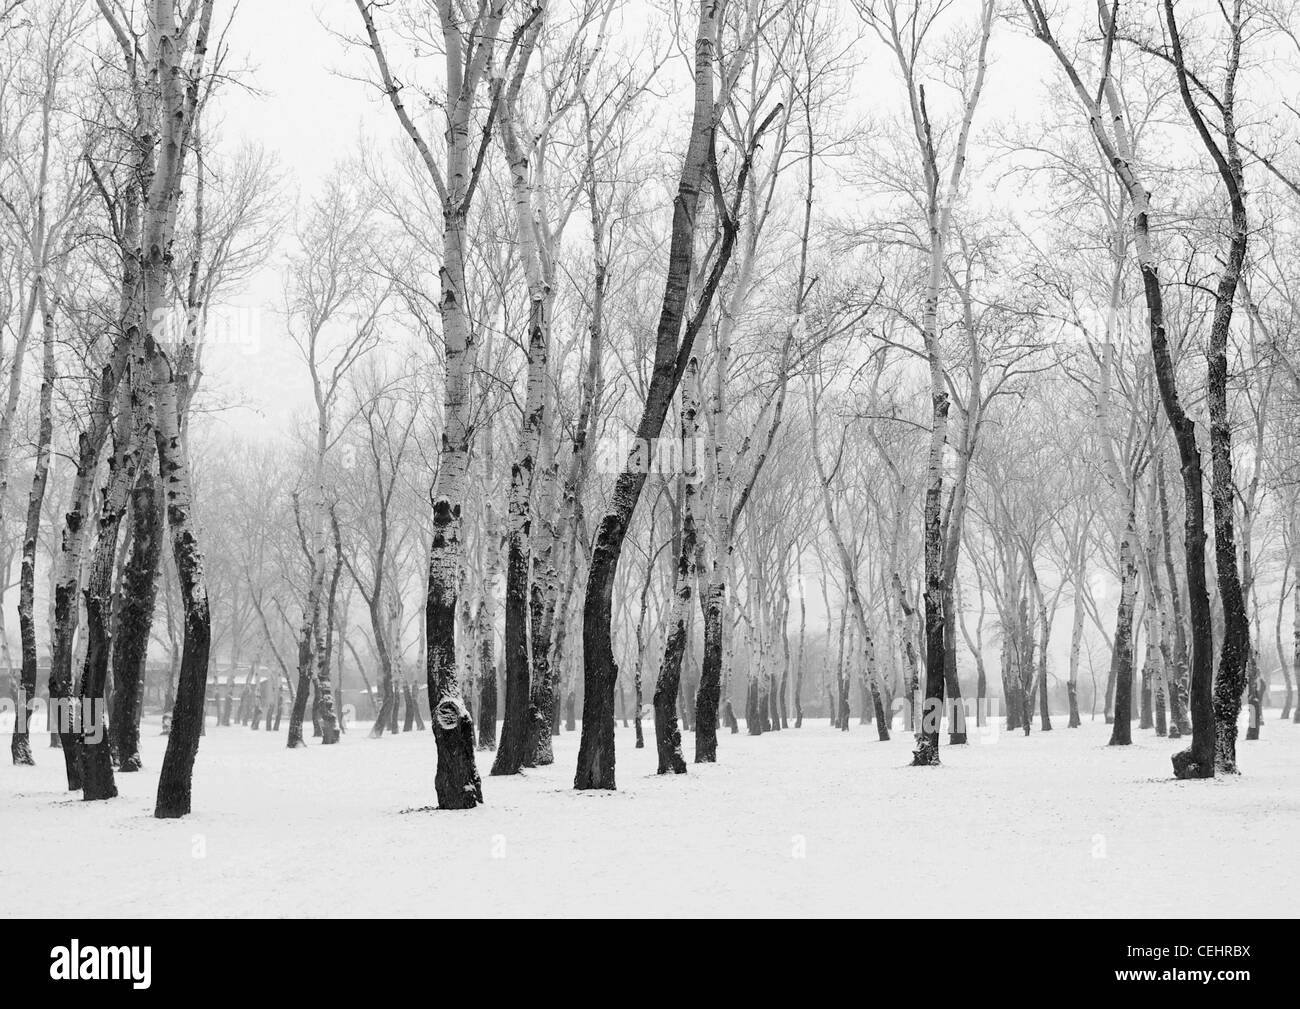 Silver Birch trees on snow-covered ground, Zagreb, Croatia - Stock Image